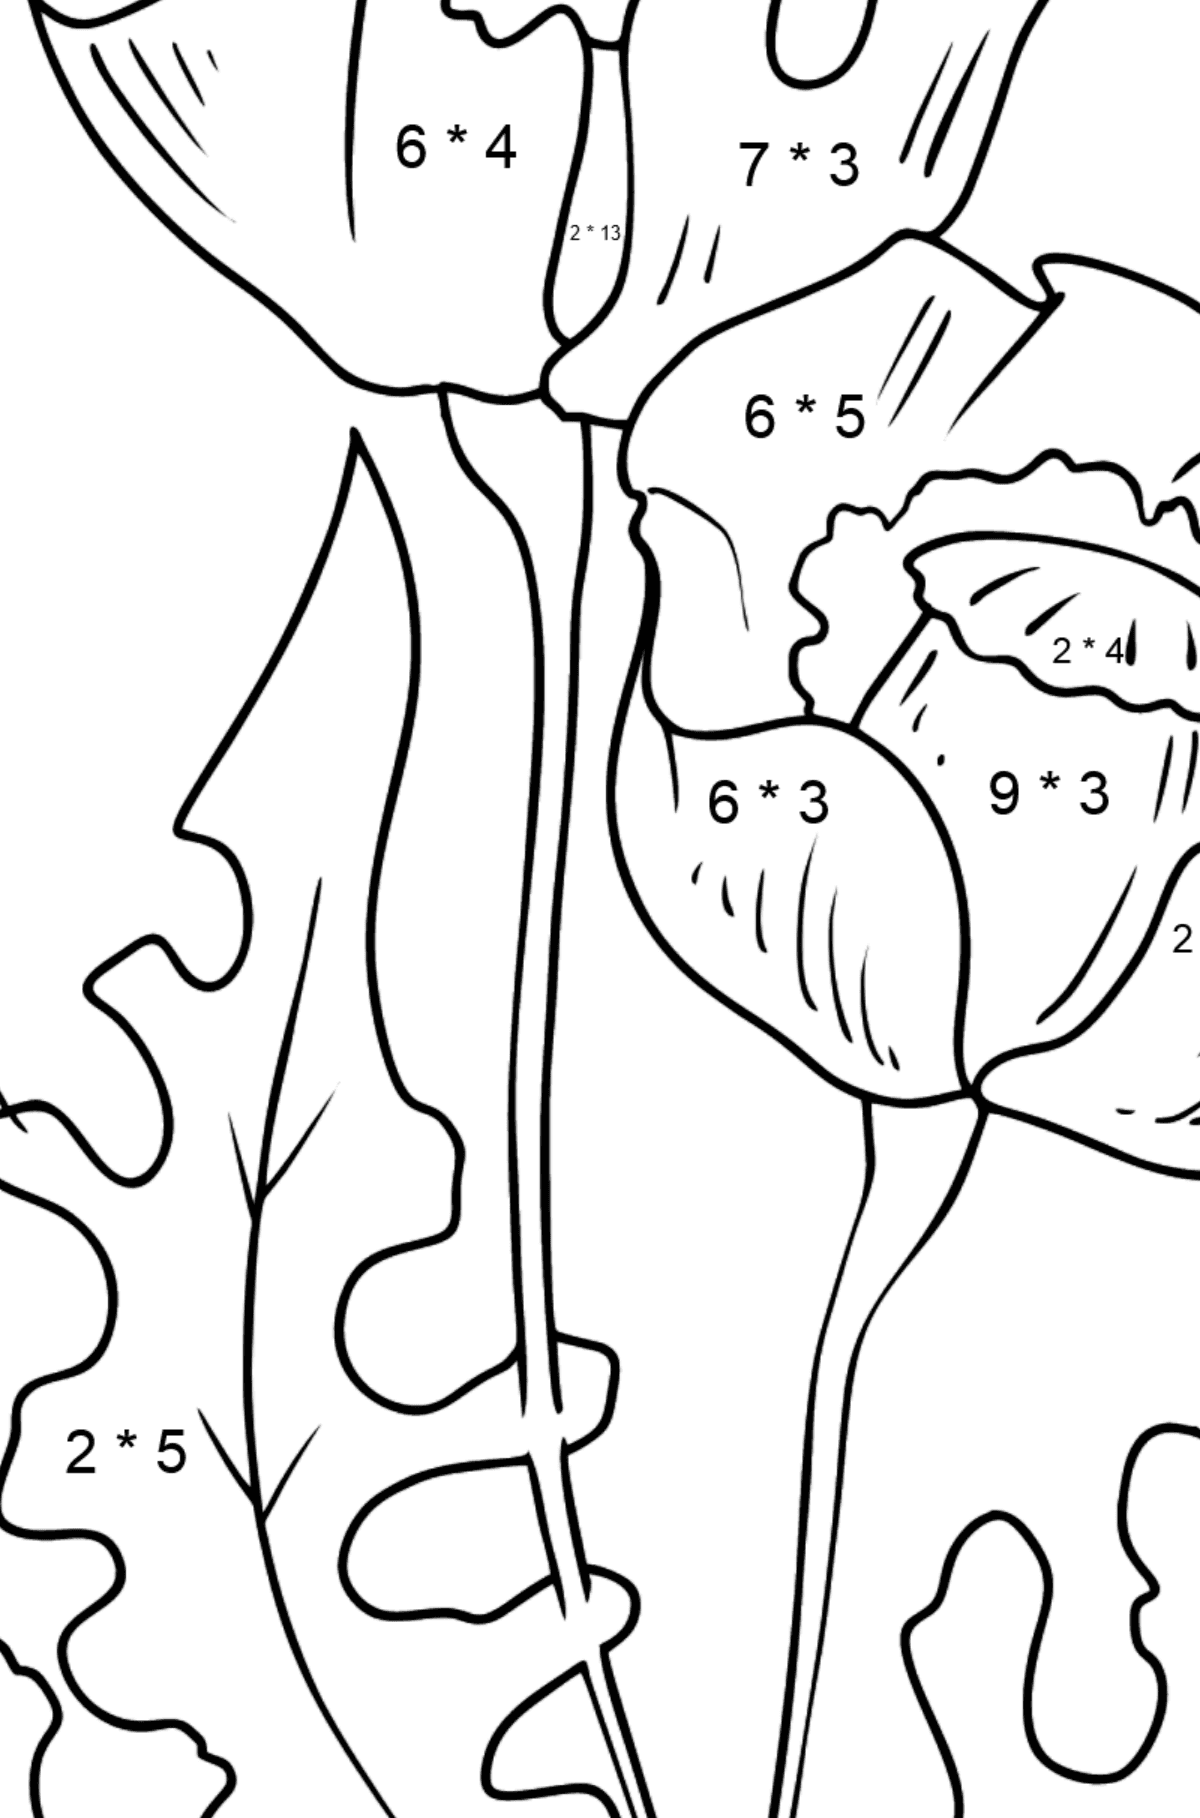 Flower Coloring Page - Beautiful Poppies - Math Coloring - Multiplication for Kids